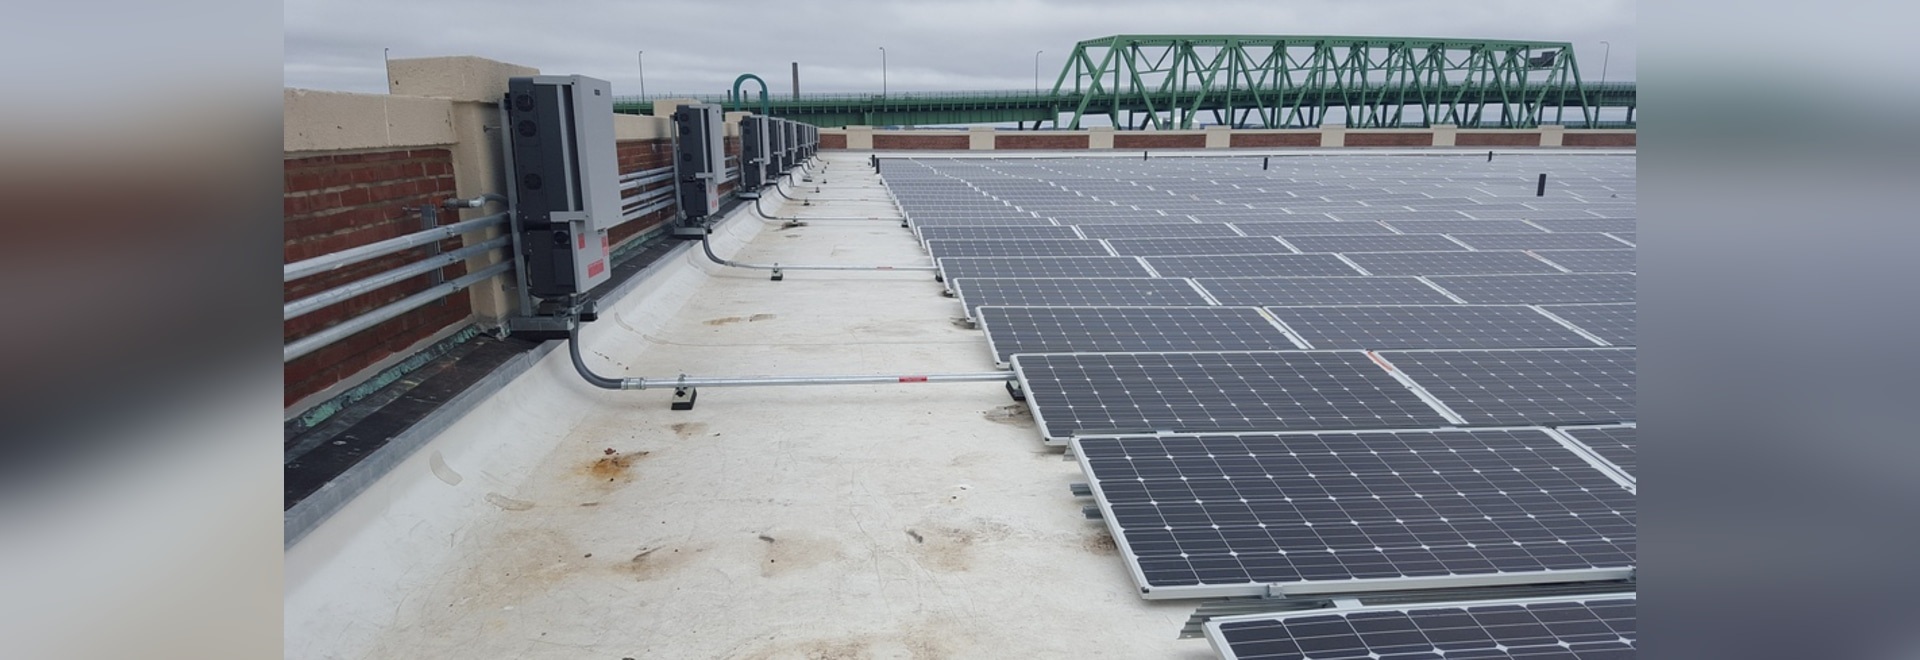 Jm Electrical 621 Energy Install Solar Pv System At Massachusetts By Electronic Projects General